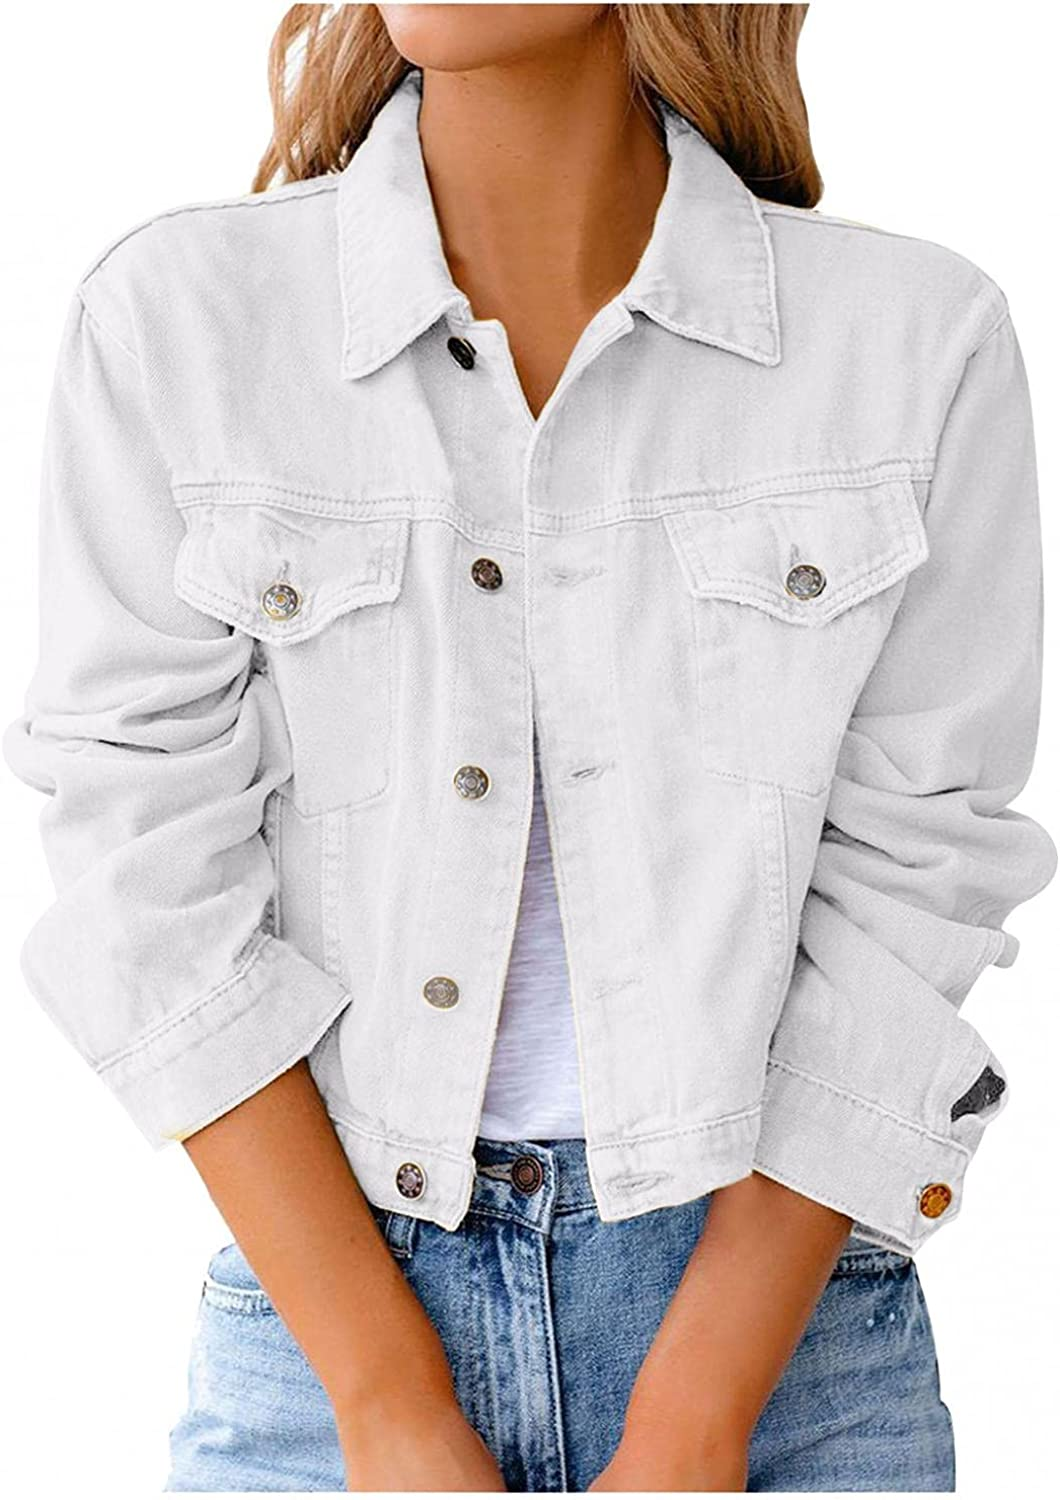 FGDJEE Jean Jackets for Women Casual Classic Button Down Distressed Short Denim Jean Jacket Coat with Pockets